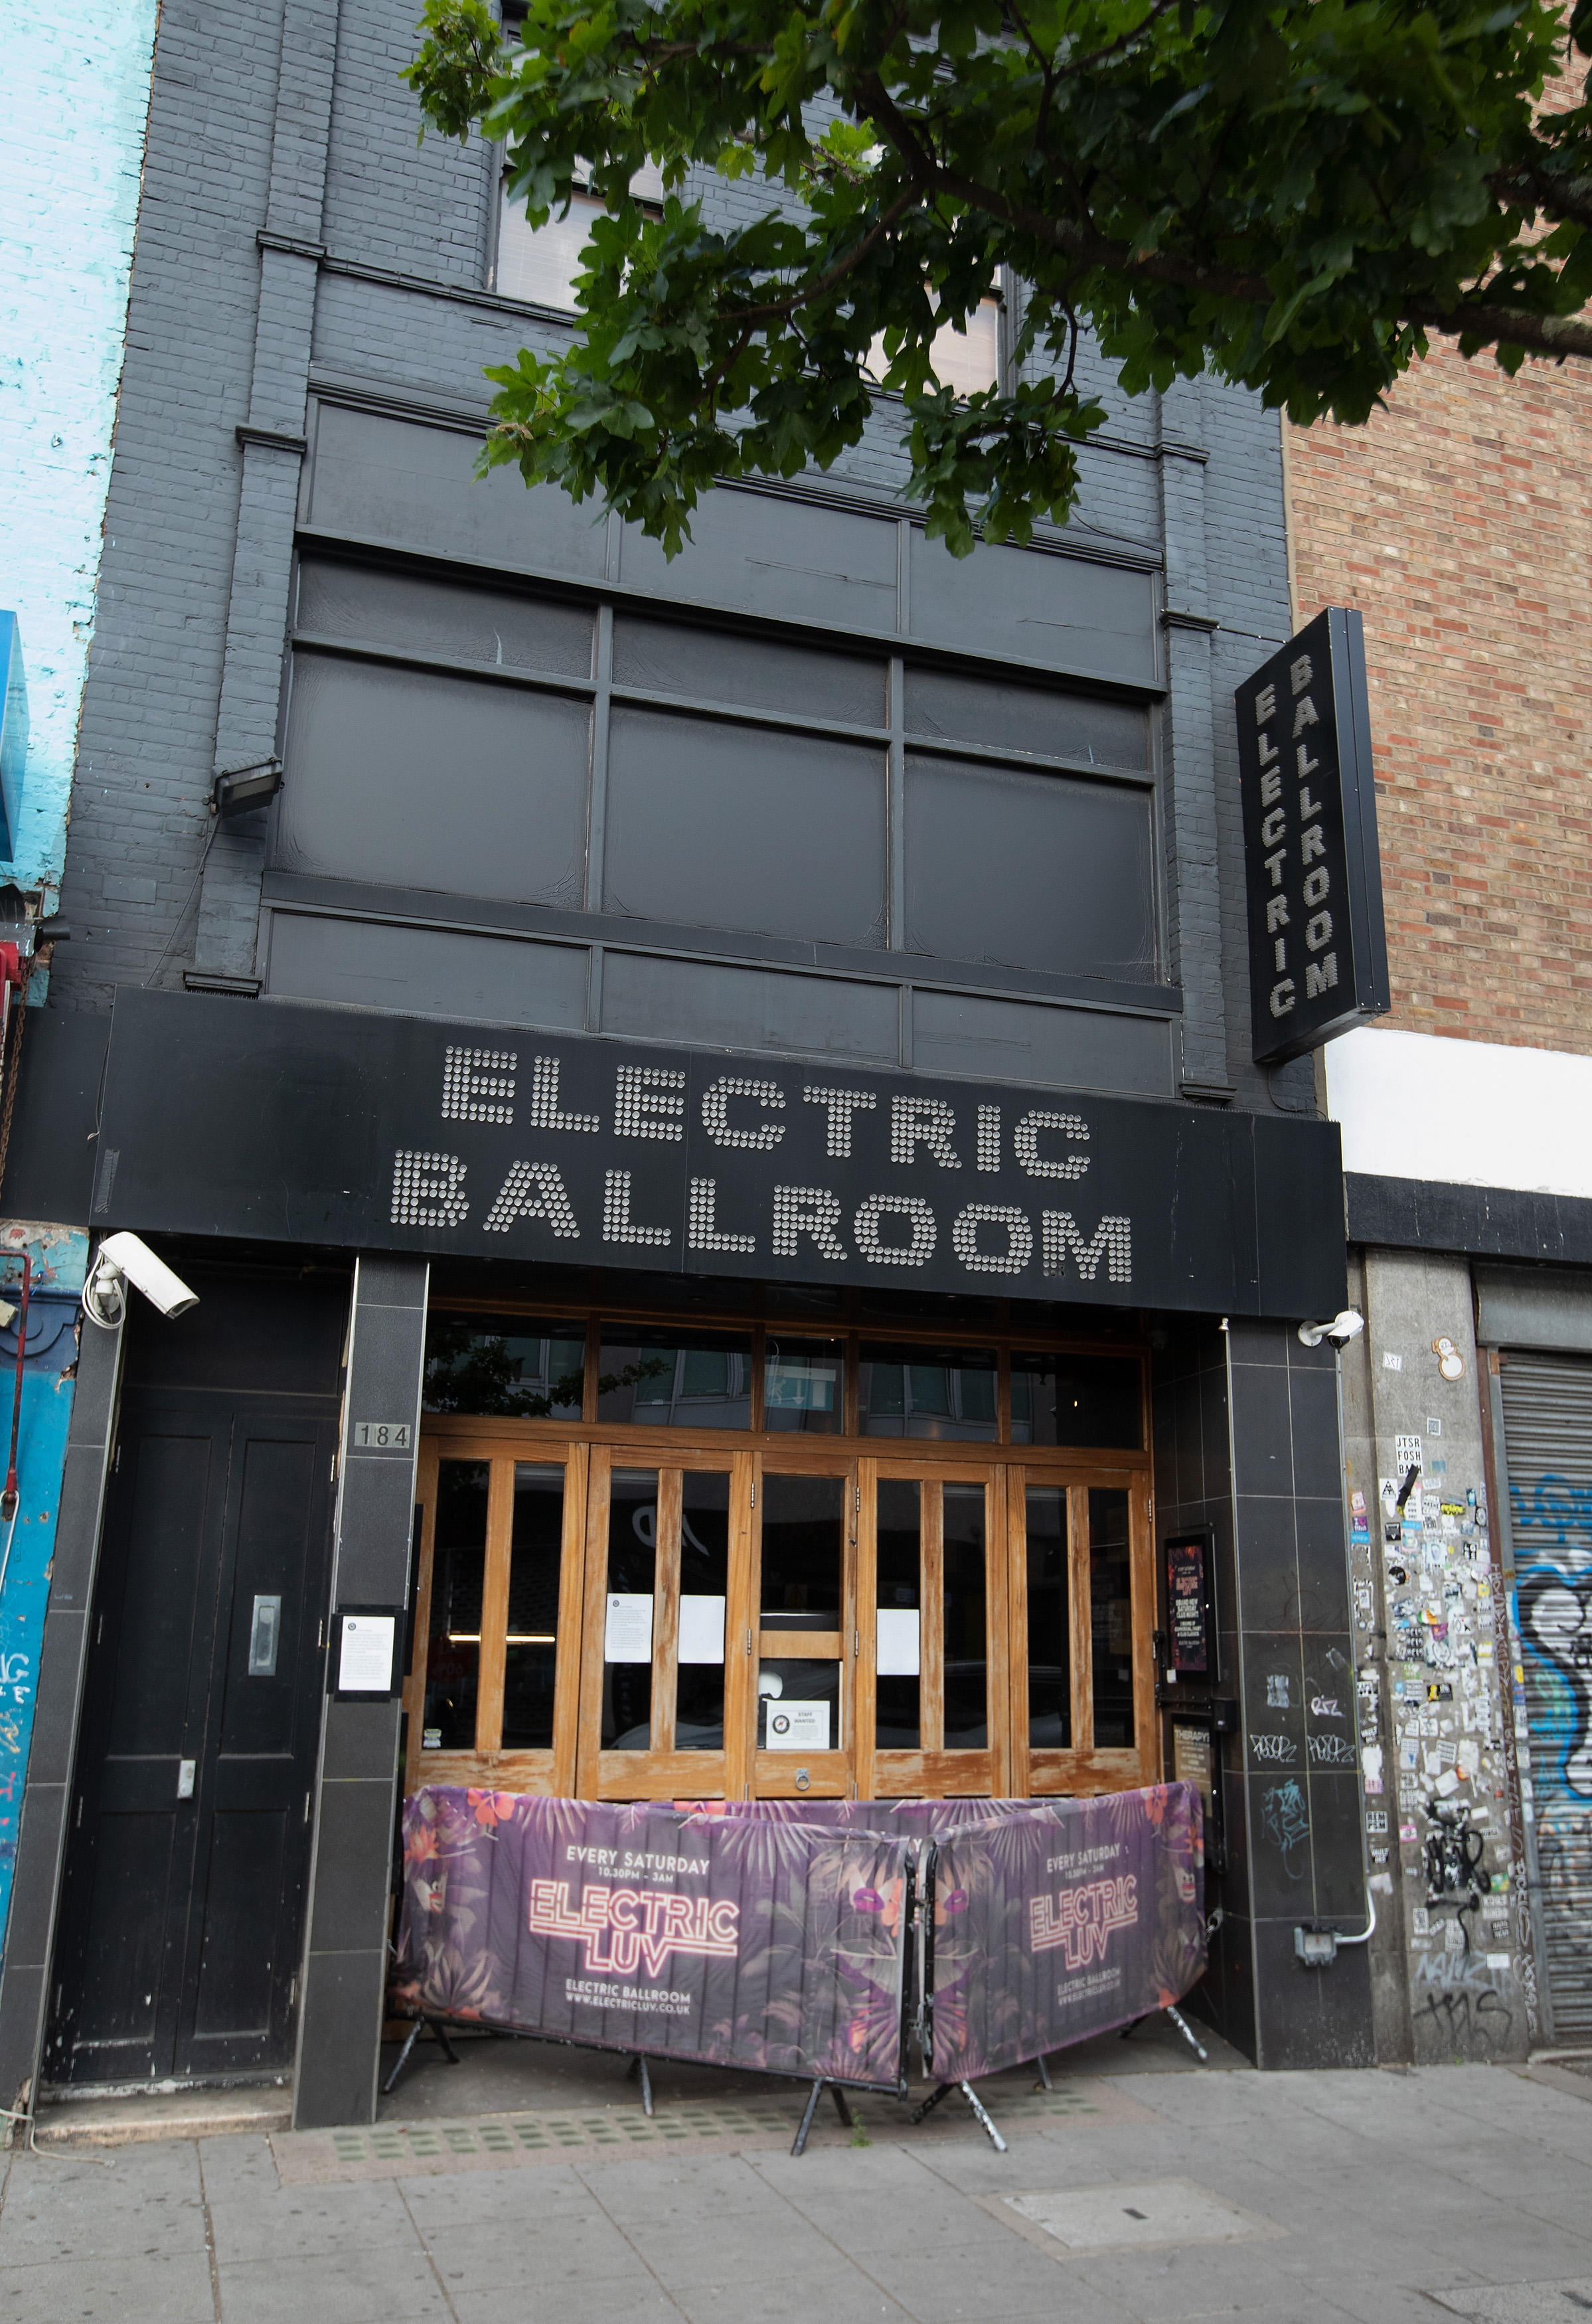 LONDON, ENGLAND - JUNE 14: A view of the closed Music Venue, Electric Ballroom, on June 14, 2020 in London, UK .As the British government further relaxes Covid-19 lockdown measures in England, this week sees preparations being made to open non-essential stores and Transport for London handing out face masks to commuters. International travelers arriving in the UK will face a 14-day quarantine period. (Photo by Jo Hale/Getty Images)